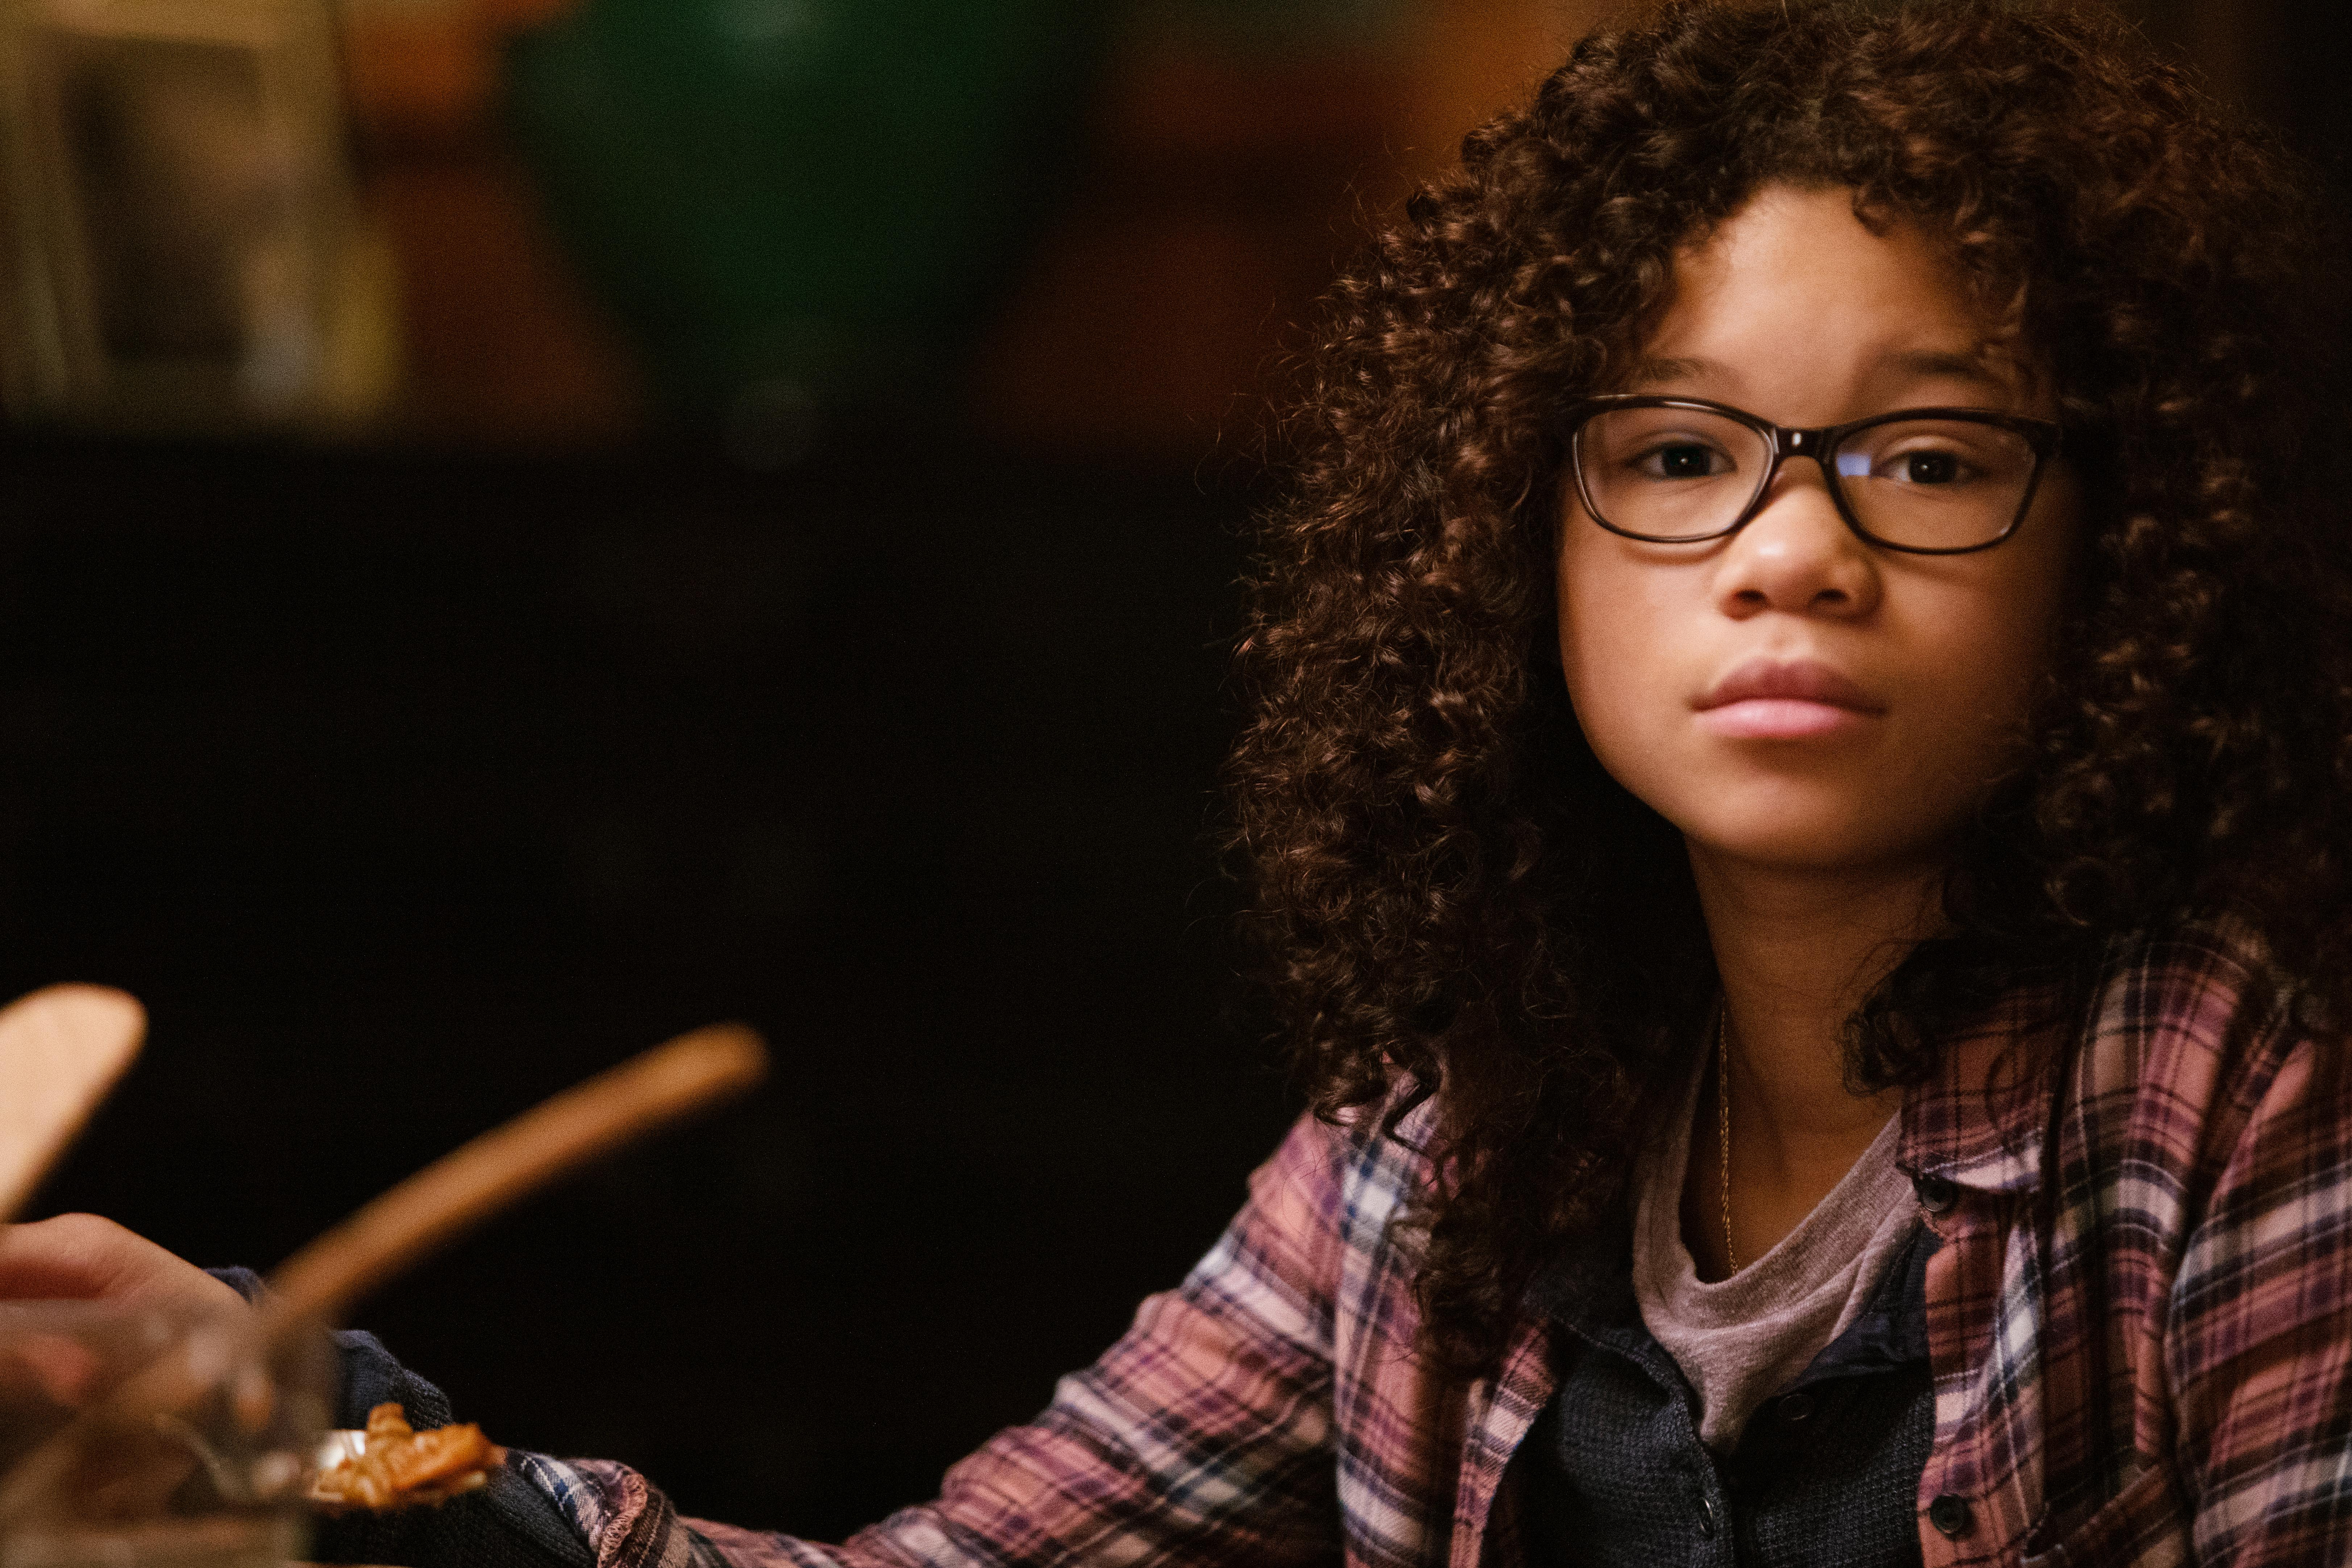 Quotes From A Wrinkle In Time: Quotes From A Wrinkle In Time